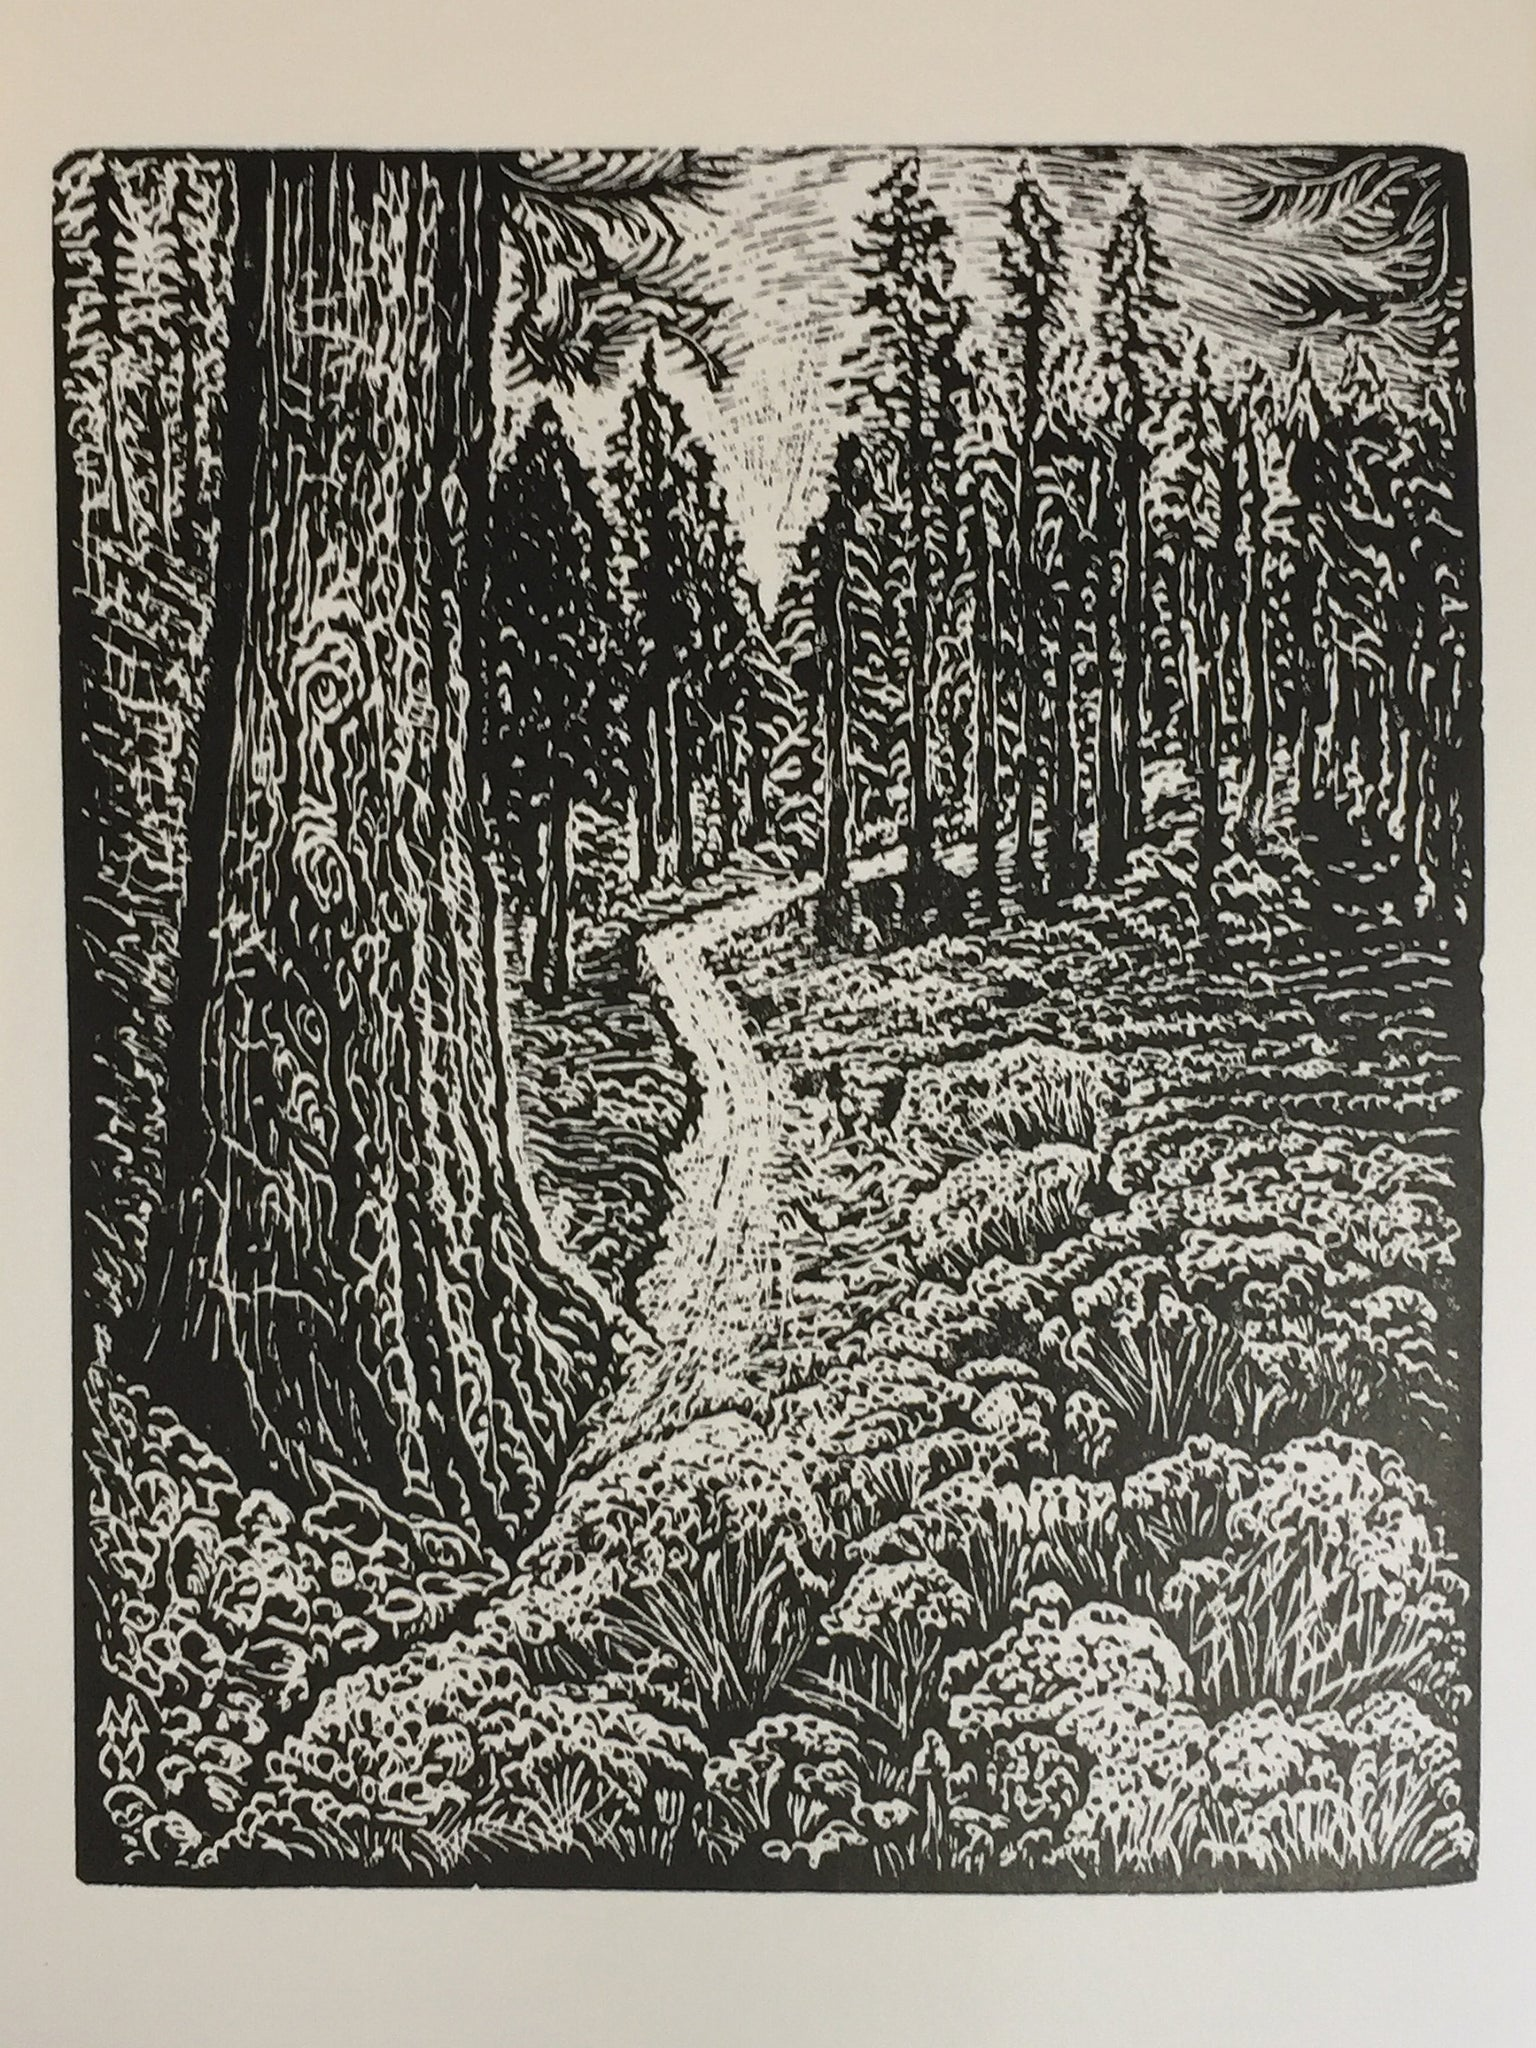 Original Wood Engraving Between Two Pines hiking trail in mountain pine forest